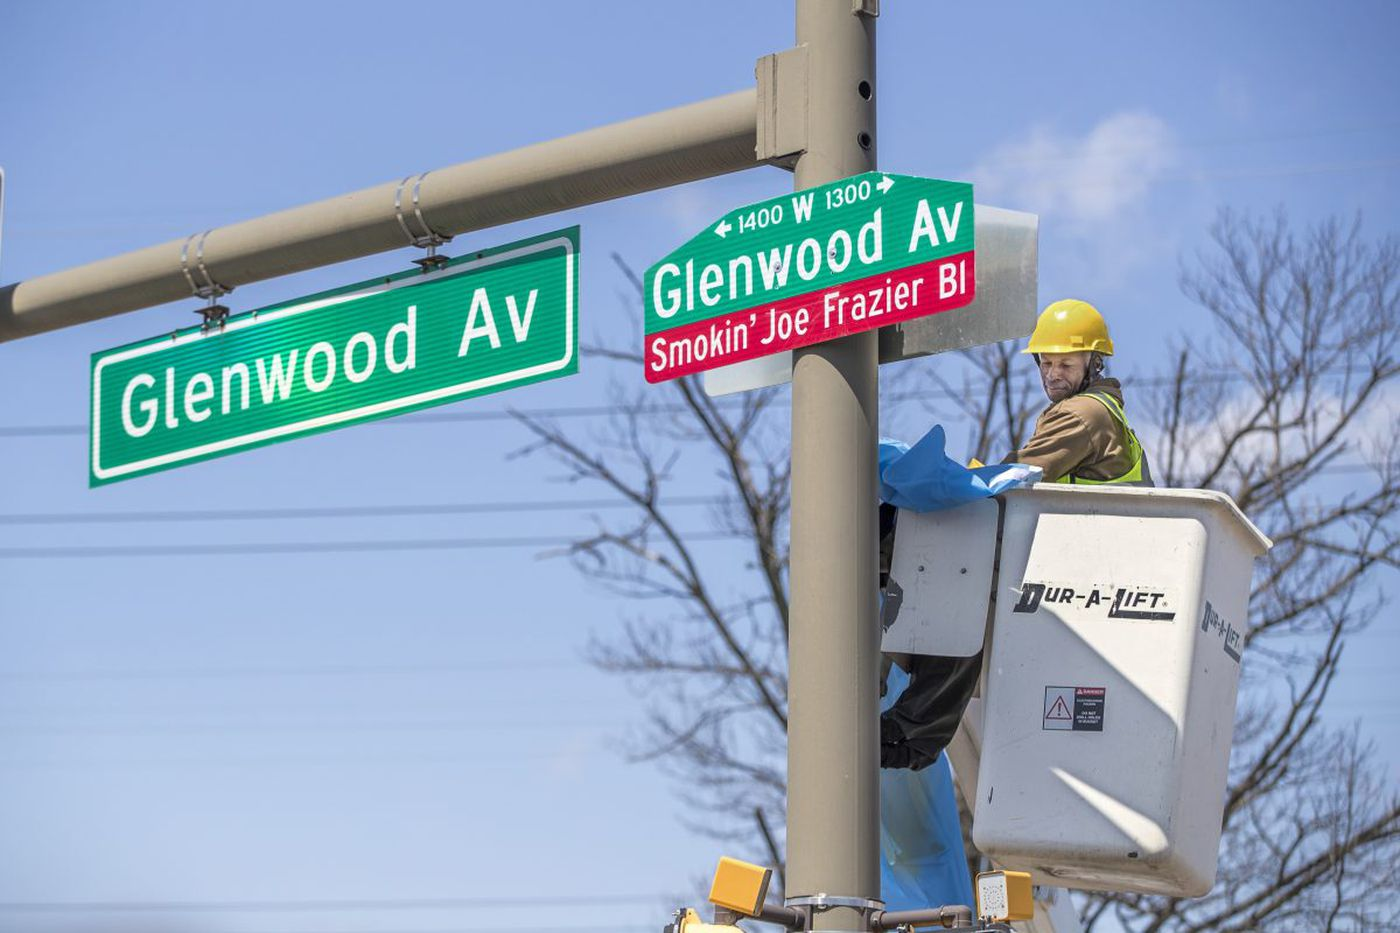 North Philly street named to honor Joe Frazier